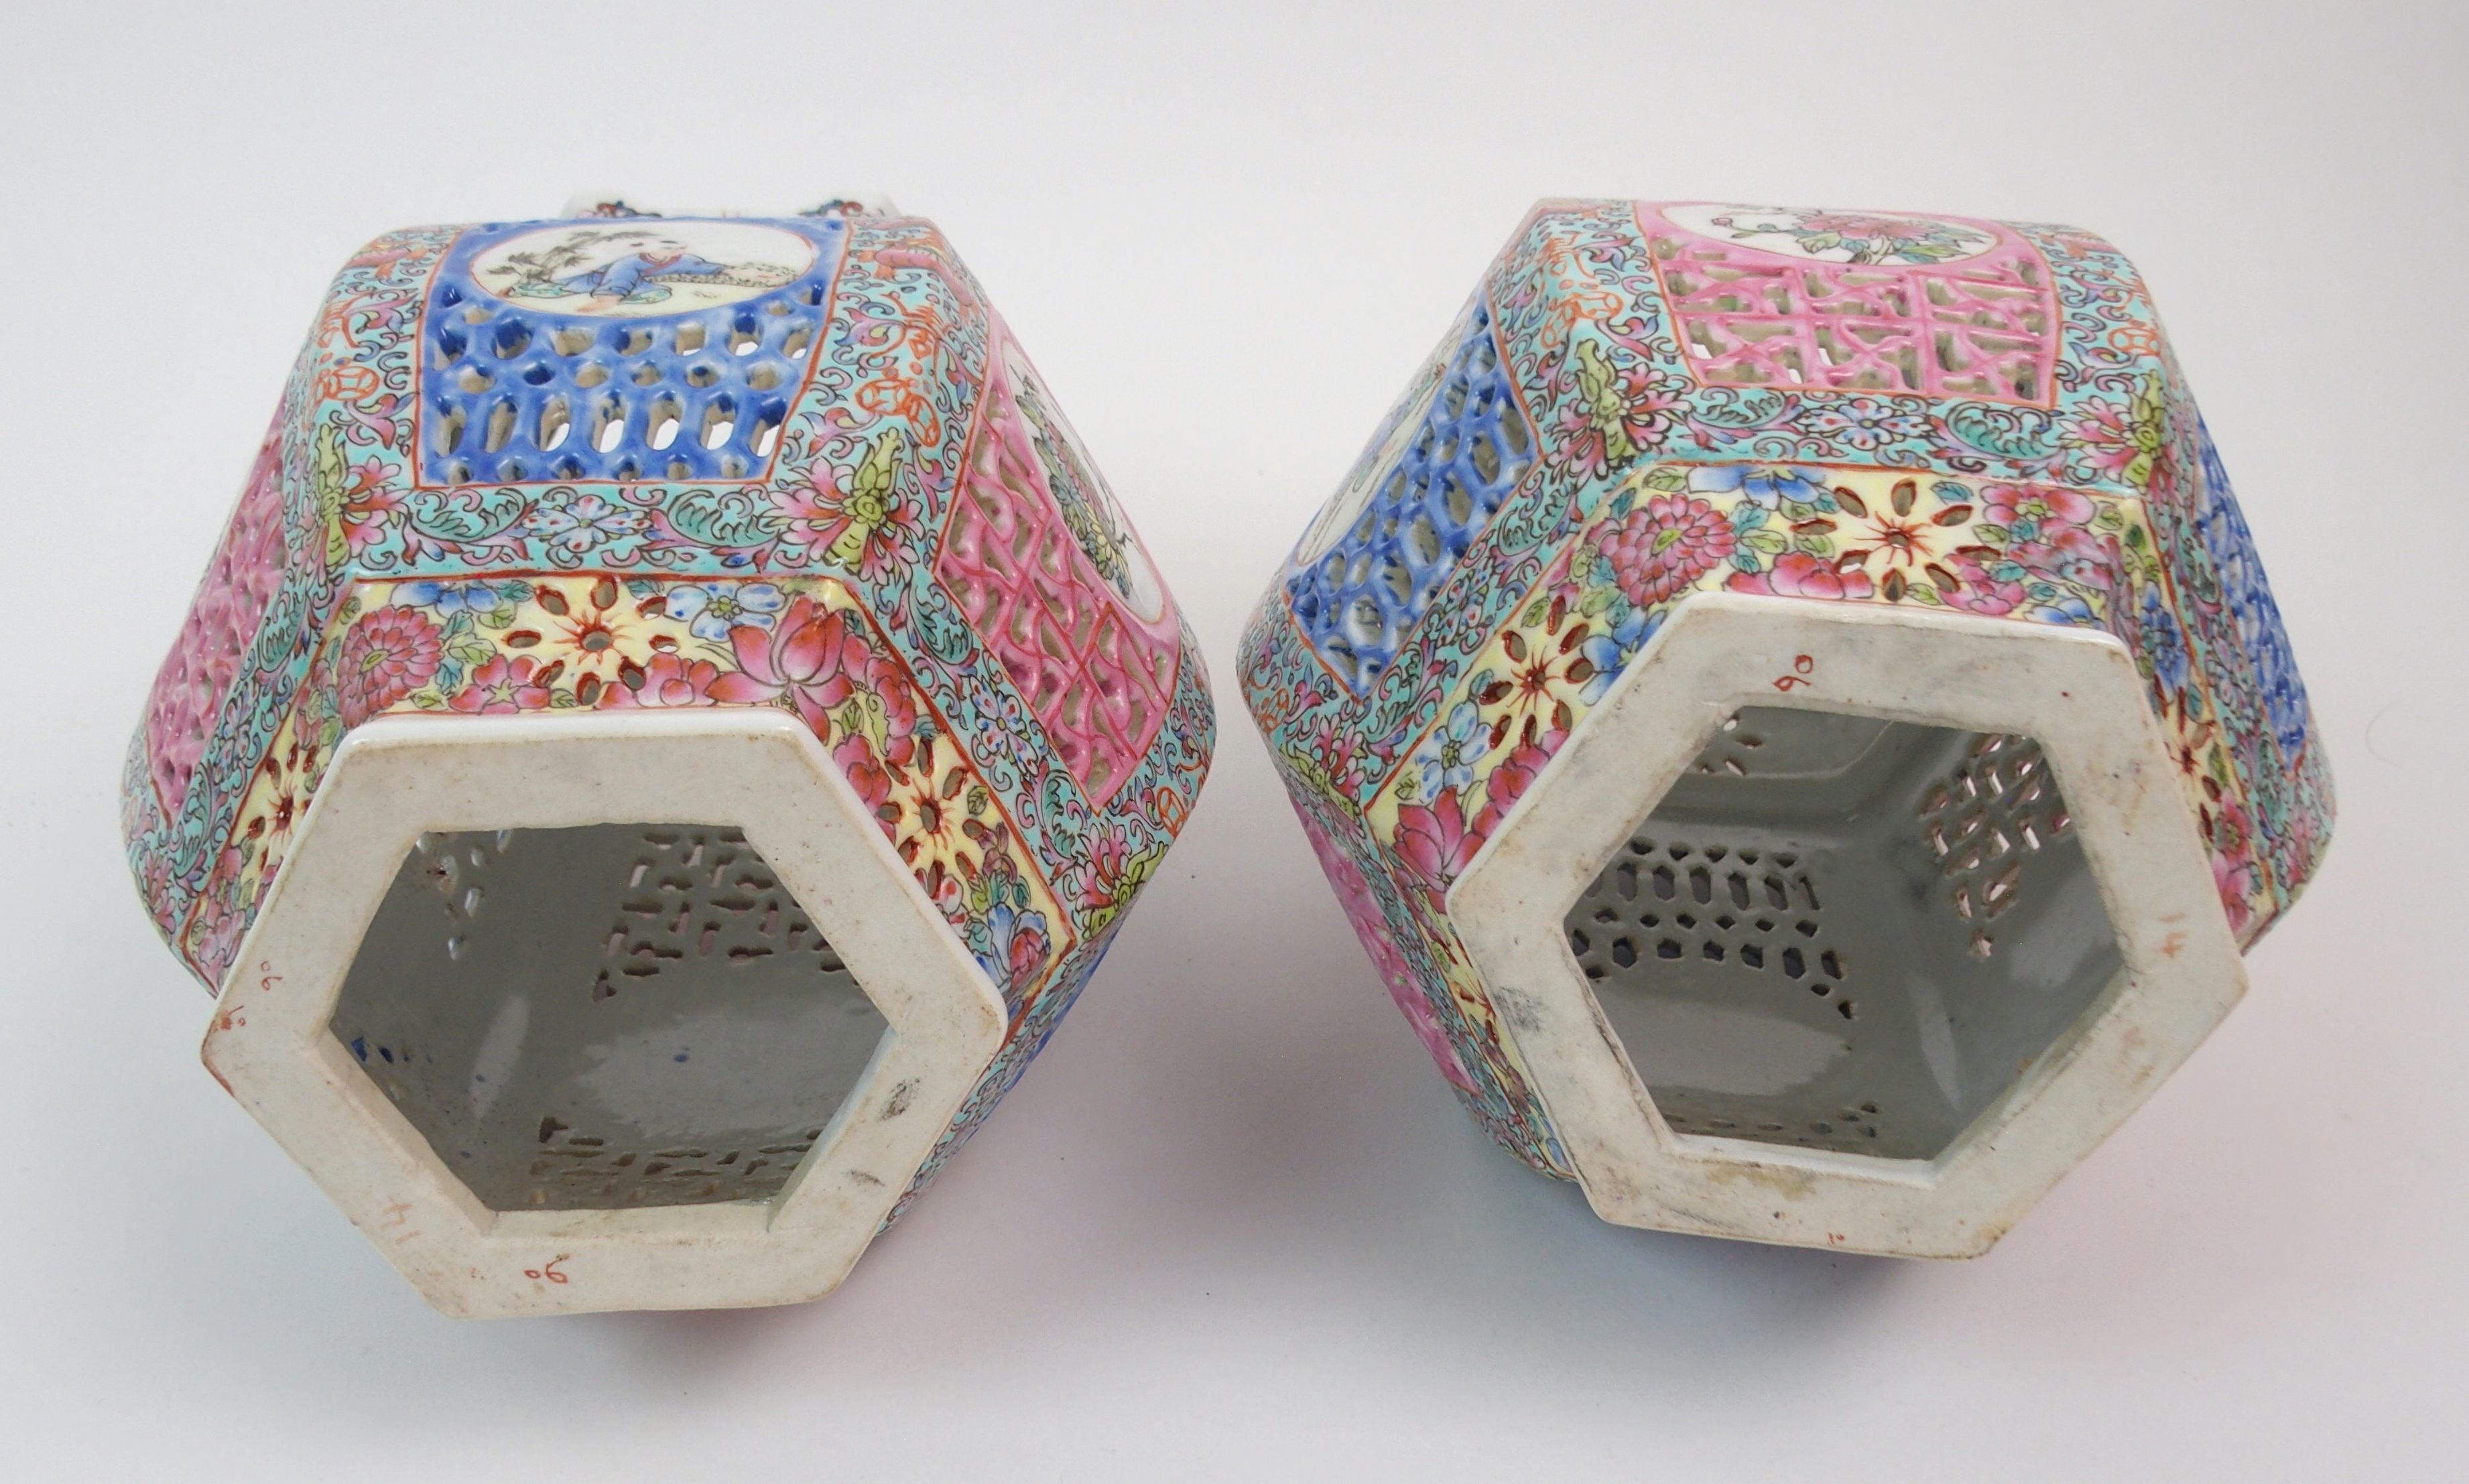 Lot 12 - A PAIR OF CHINESE POLYCHROME HEXAGONAL LANTERN VASES painted and pierced with alternate panels of